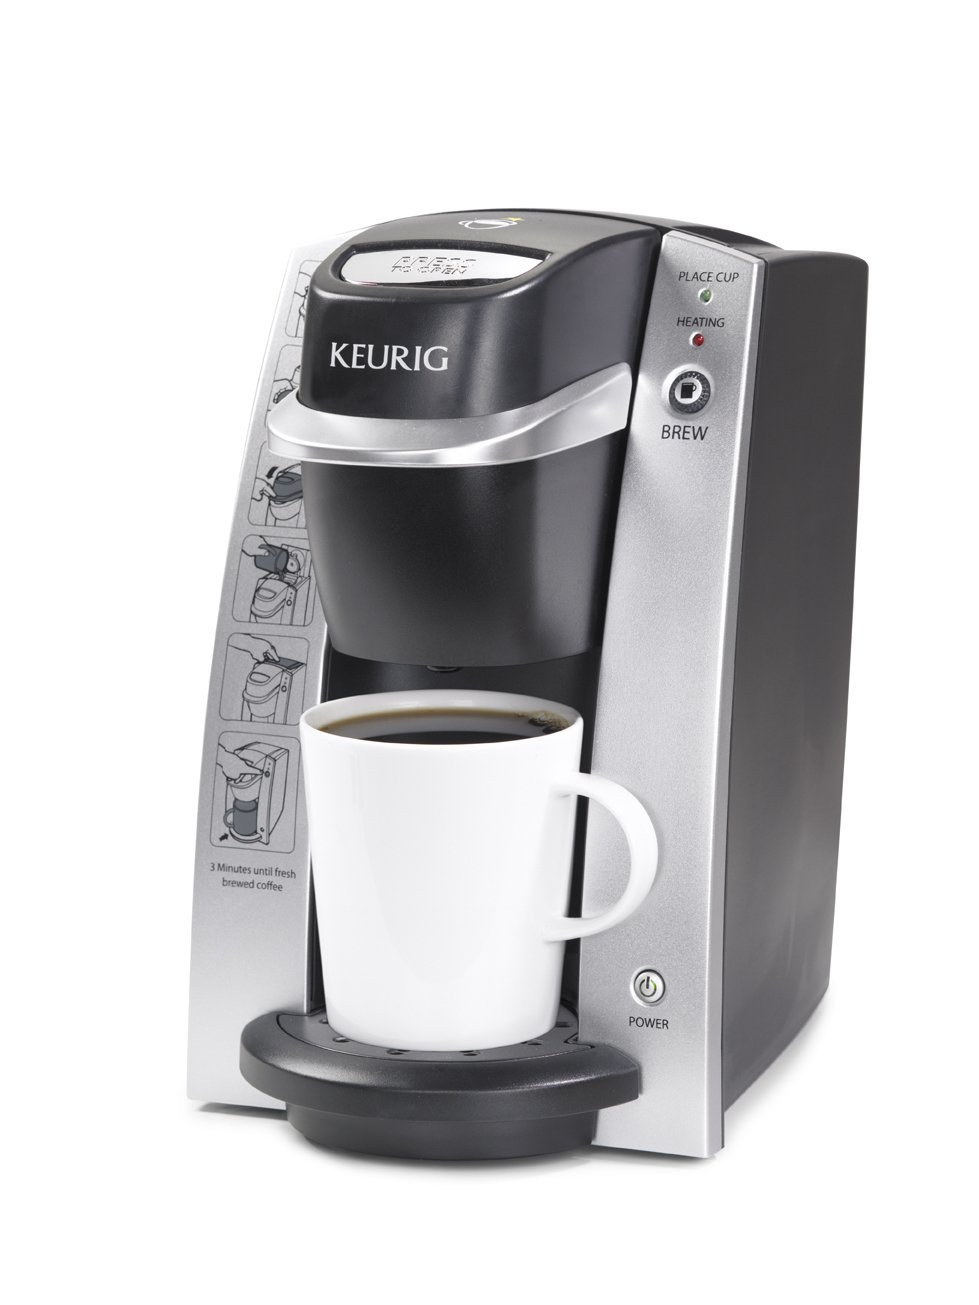 Image Result For How To Make Coffee In A Keurig Without K Cups